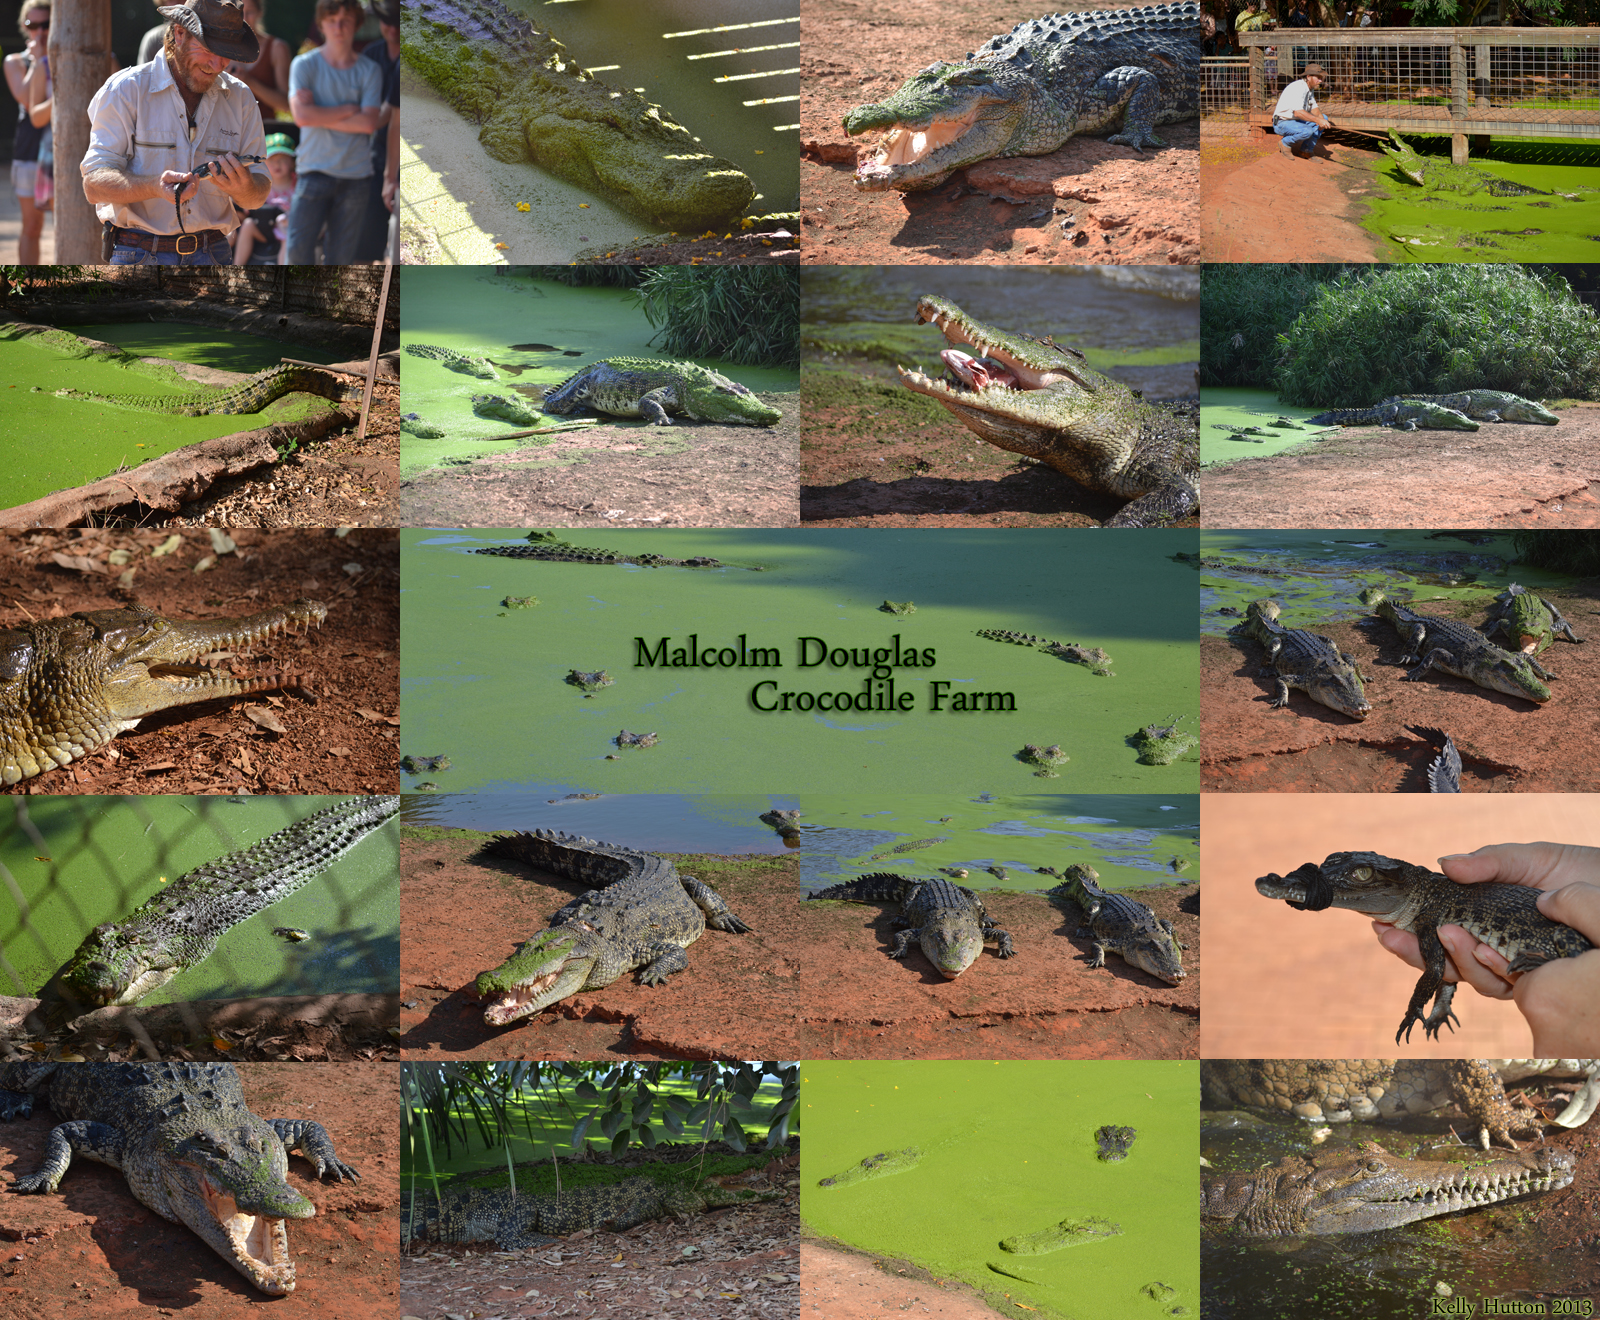 The Malcolm Douglas Crocodile Park